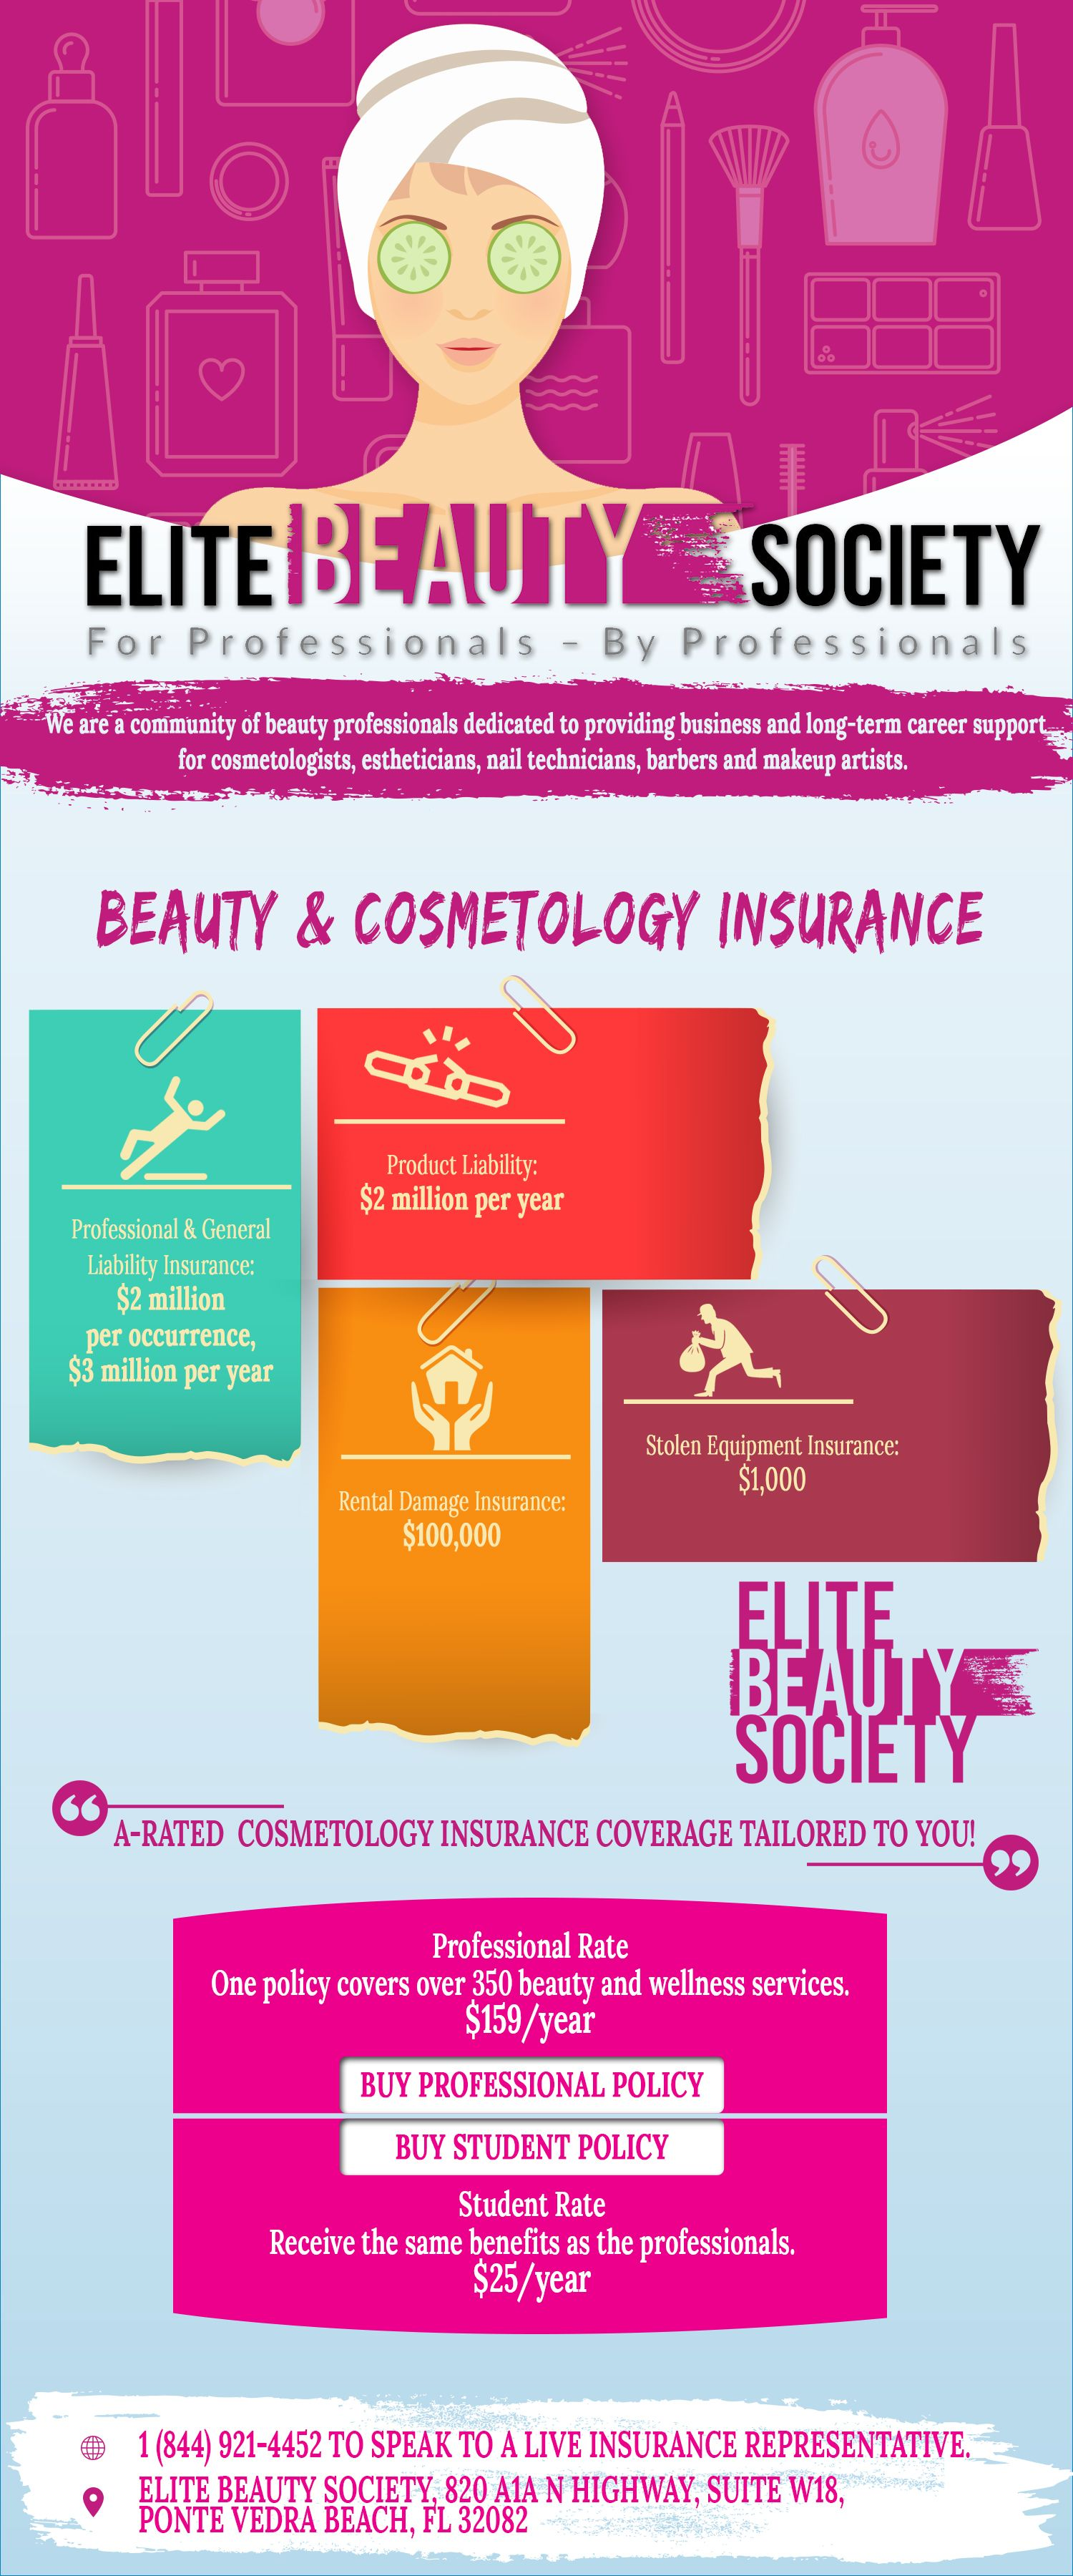 Upgrade your beauty career in Elite beauty society